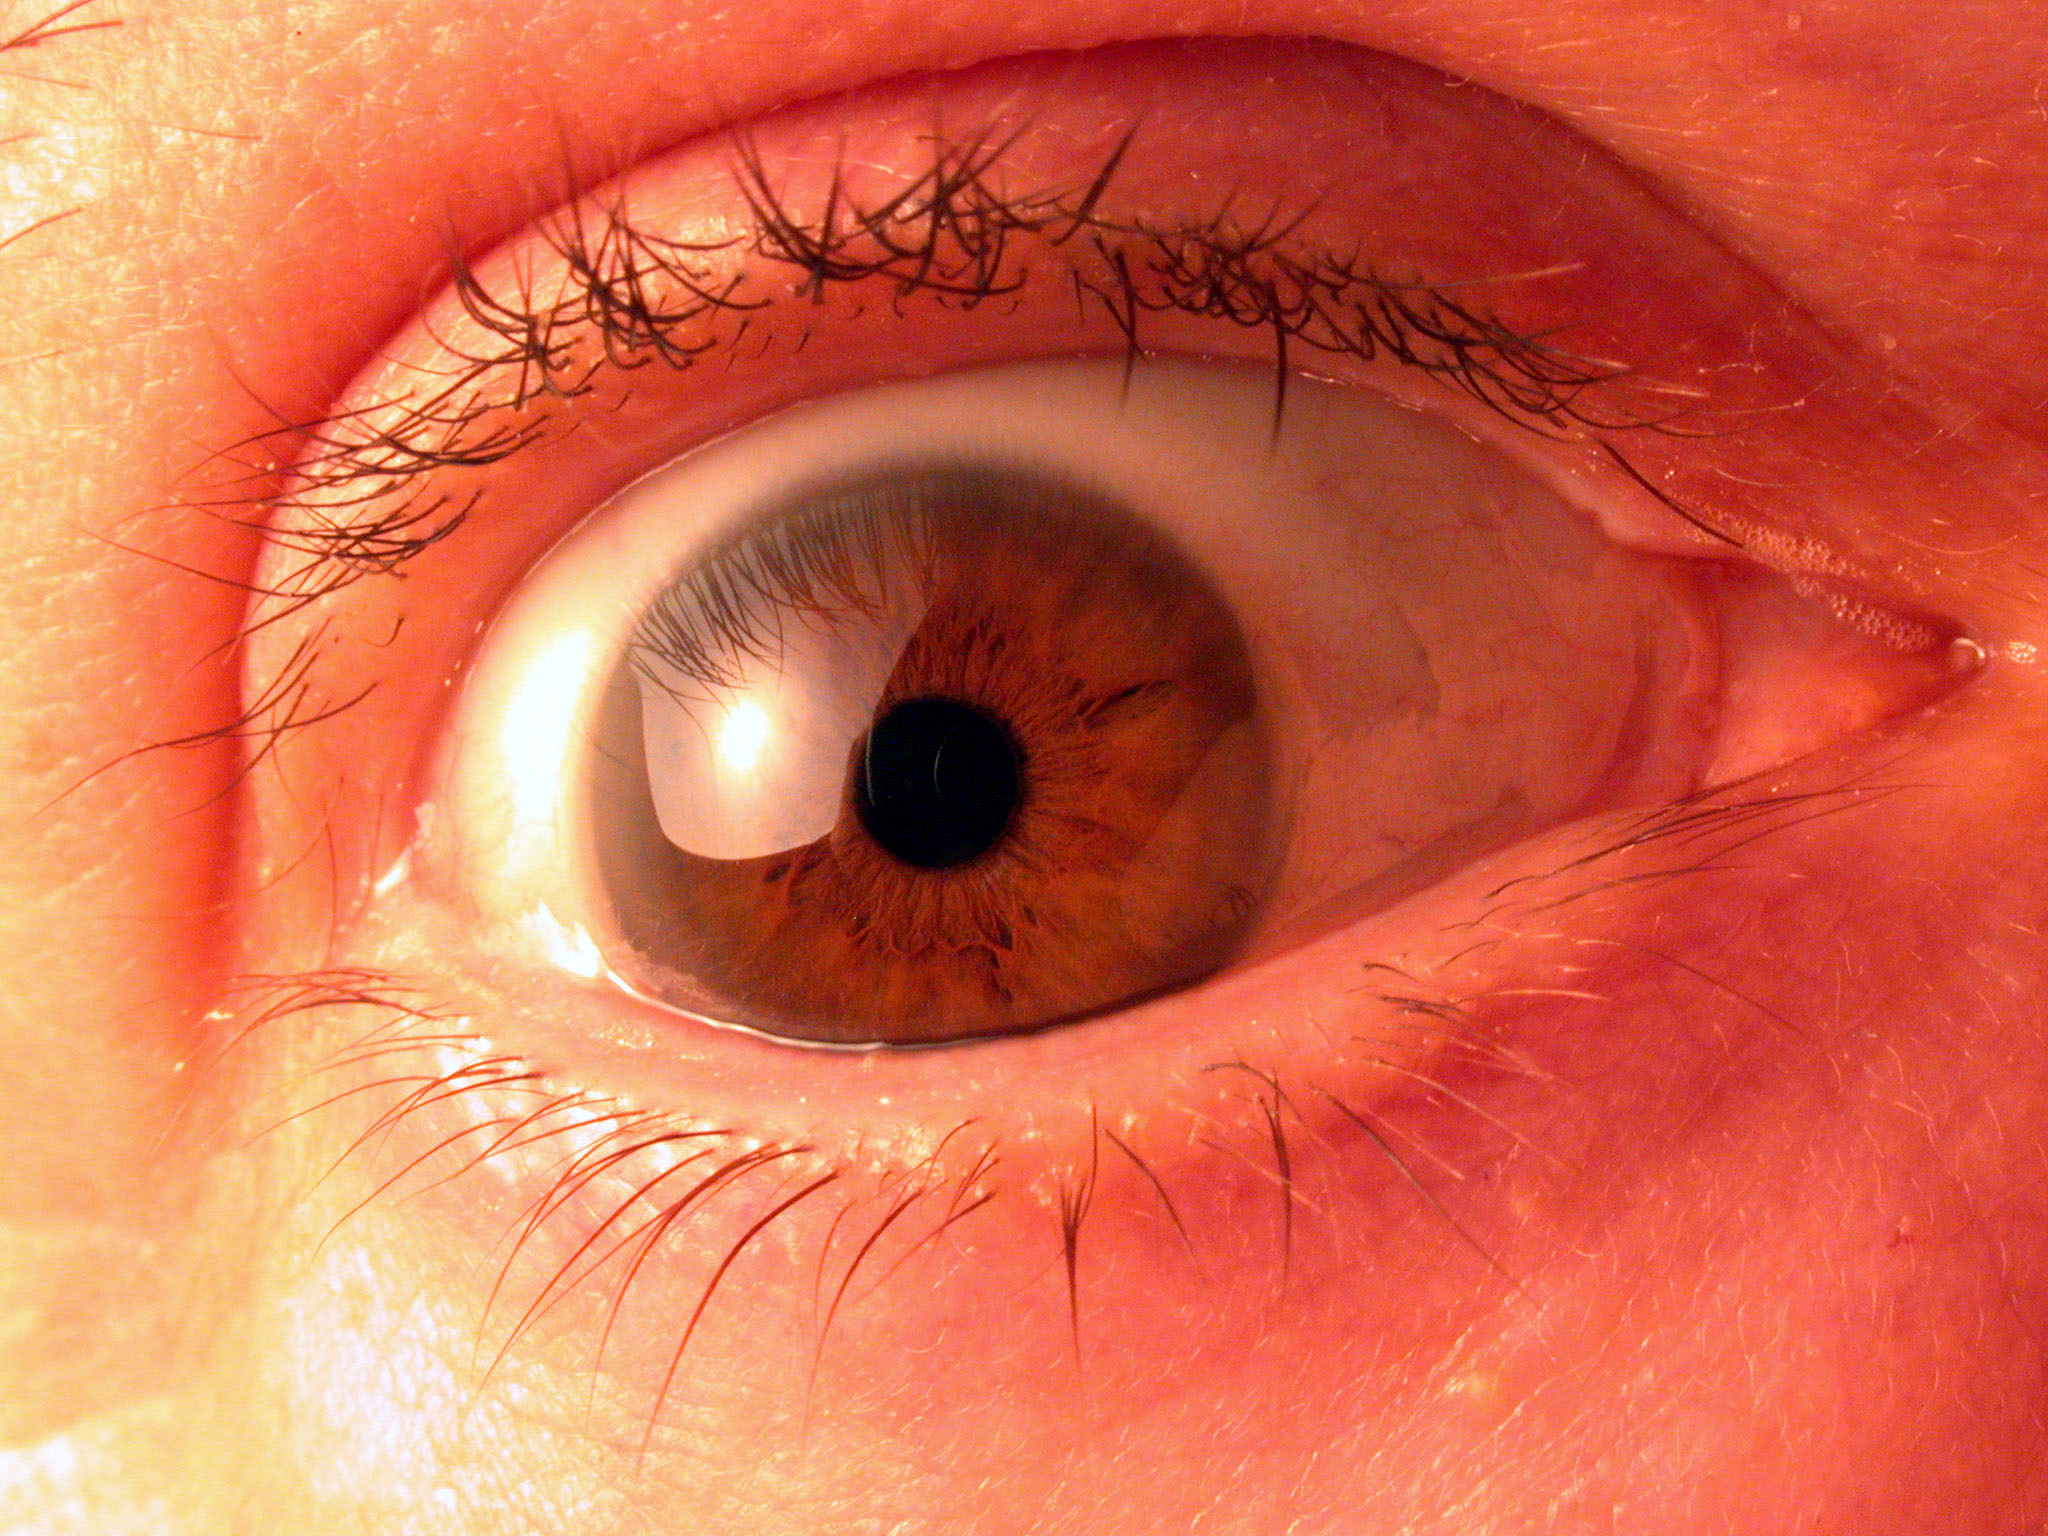 Contact lens users urged to be vigilant after outbreak of rare infection